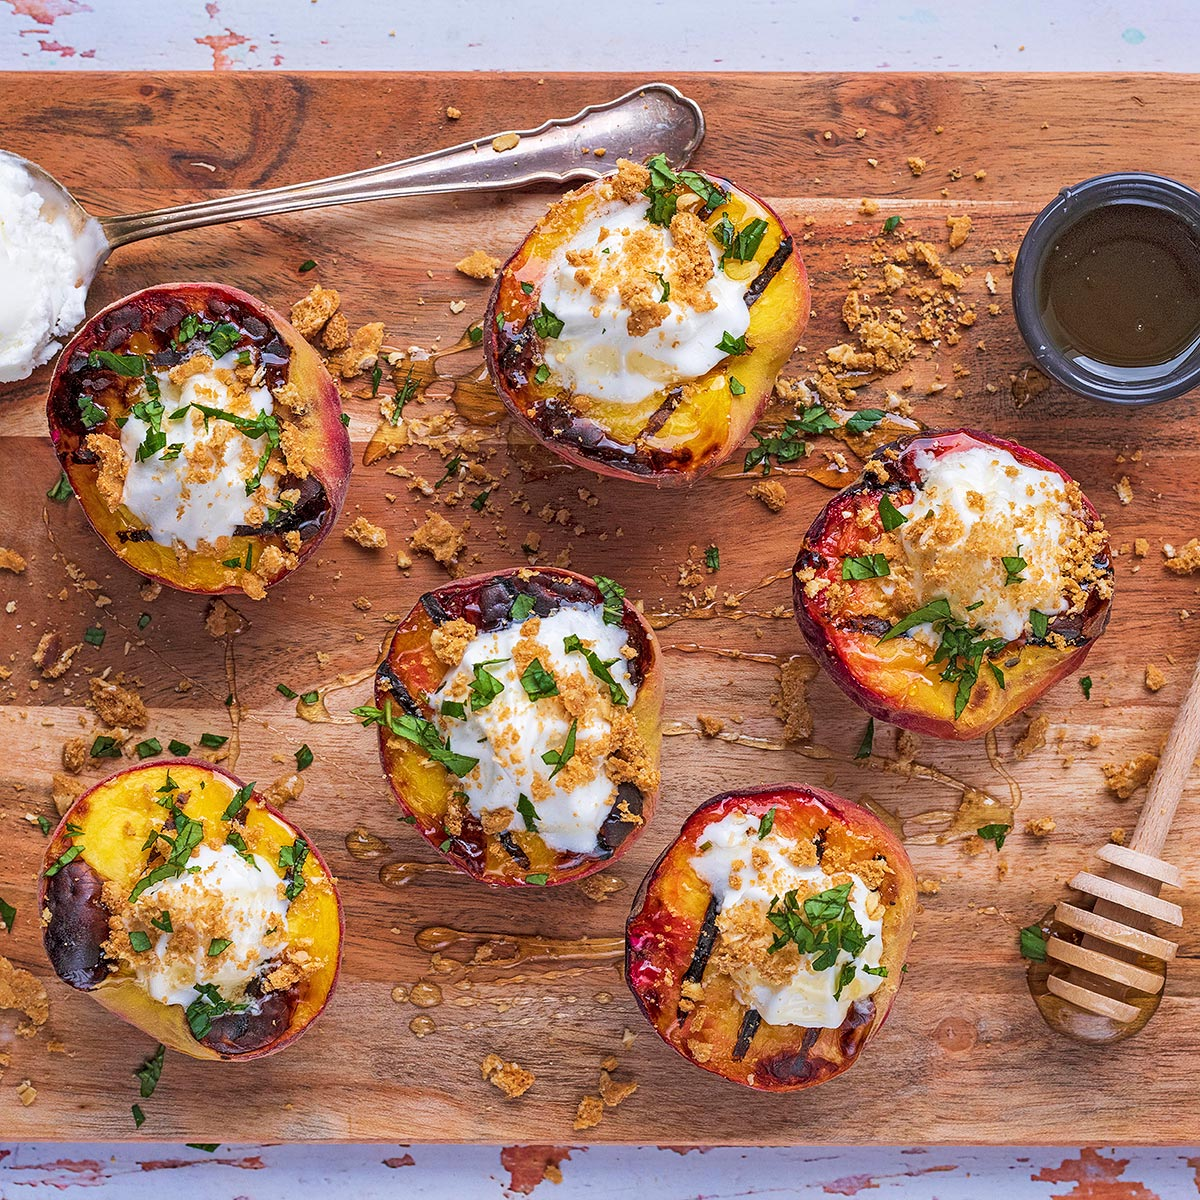 Carve out a Few Minutes to Enjoy These Grilled Peaches with Cookie Crumbles